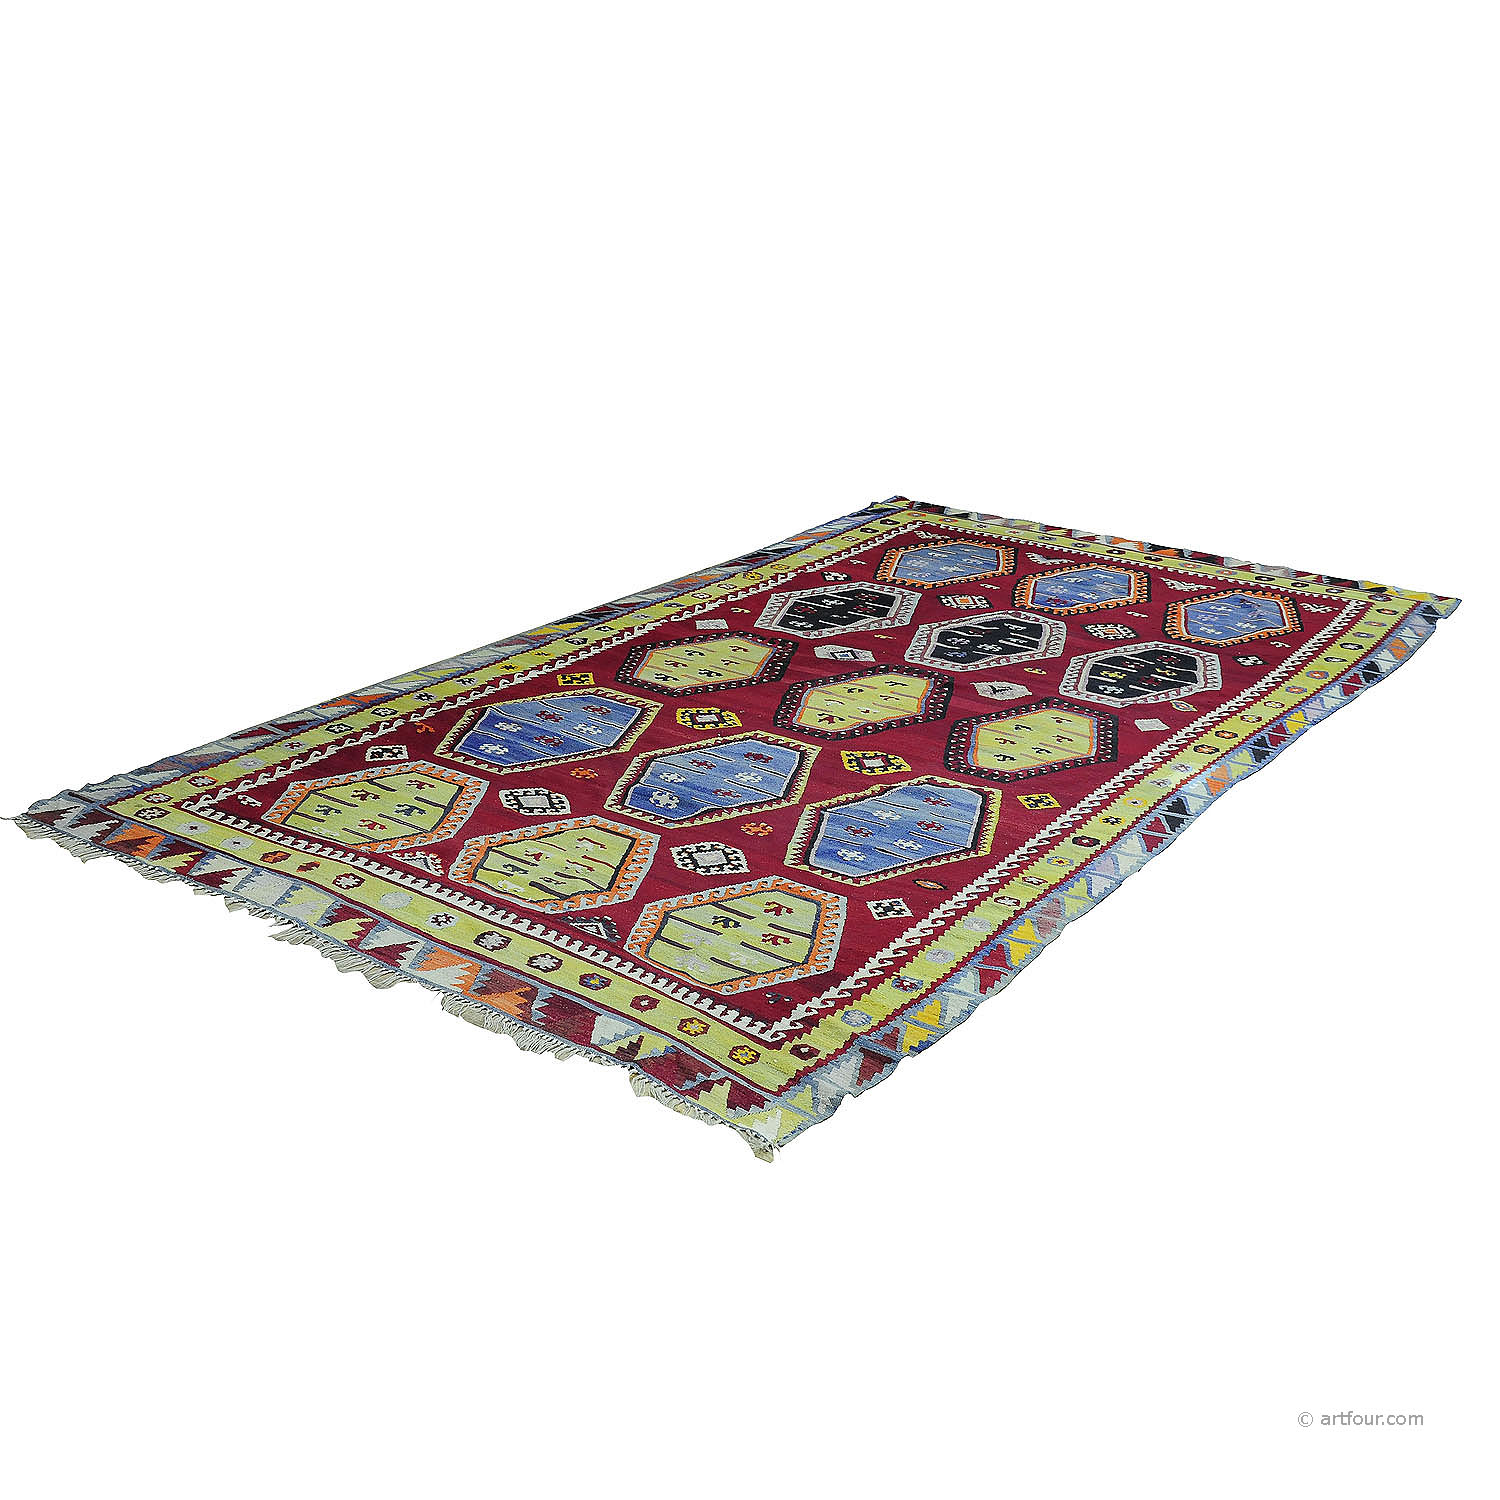 antique colorful turkish sarkisla kilim rug ca. 1930